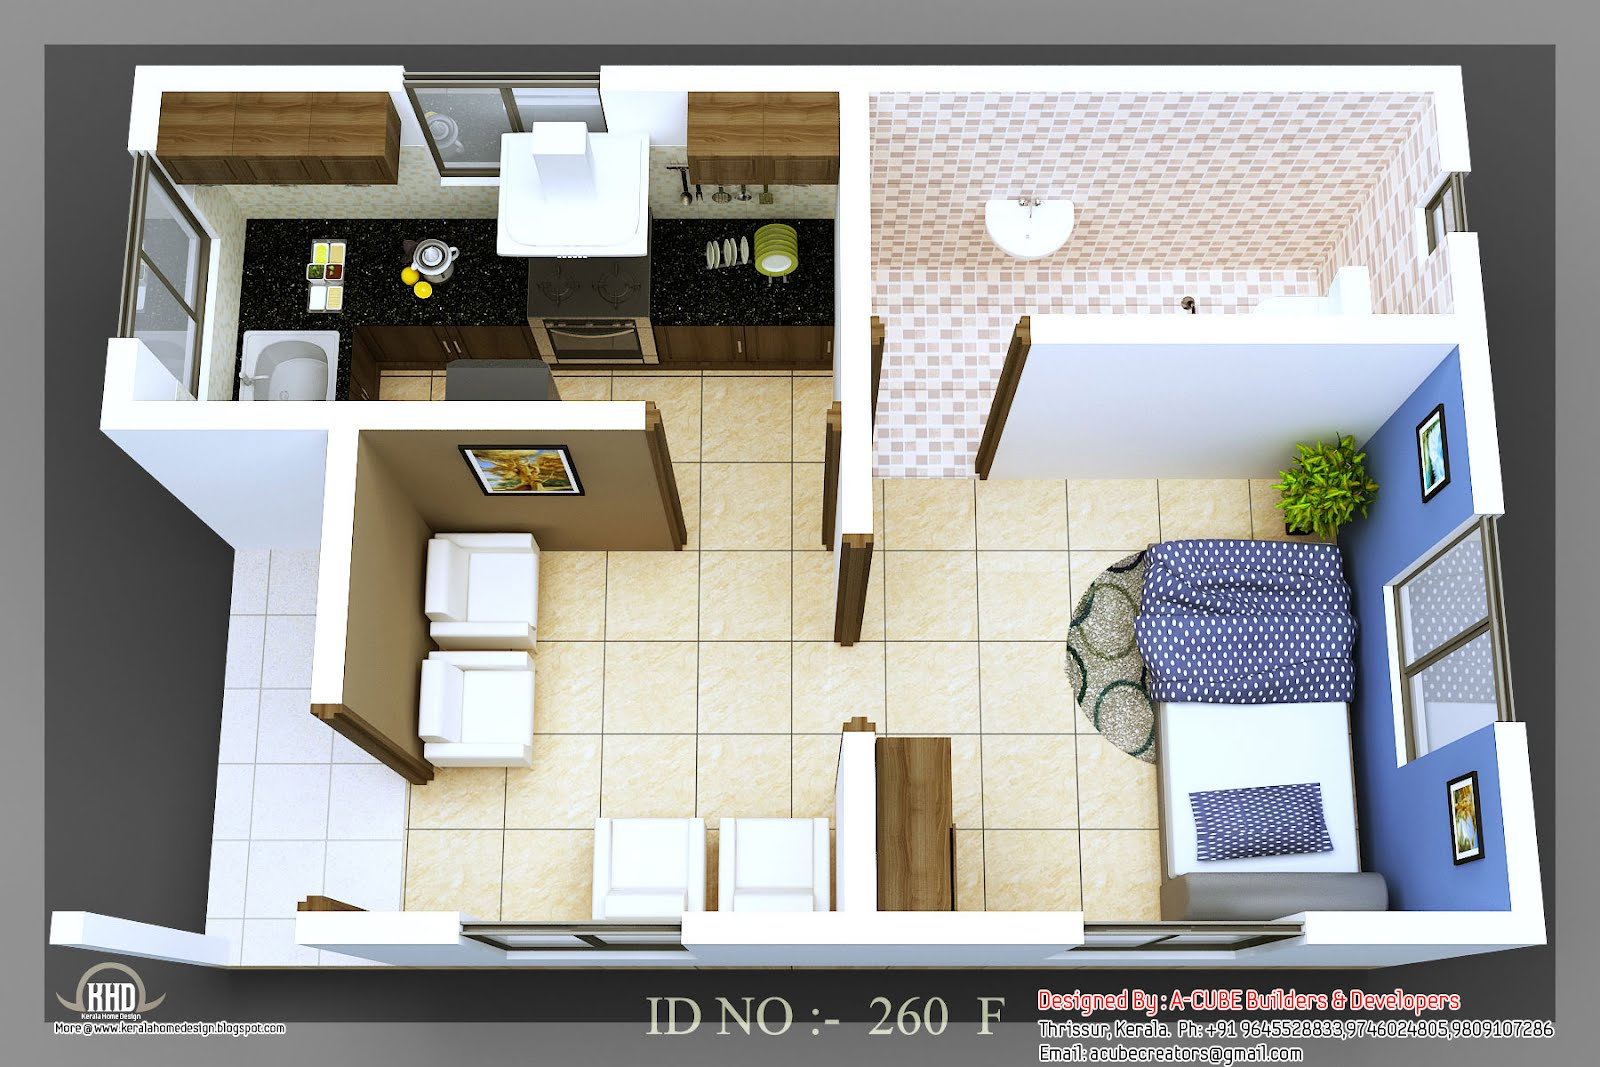 information isometric small house plans plan design tiny house floor plans download home design